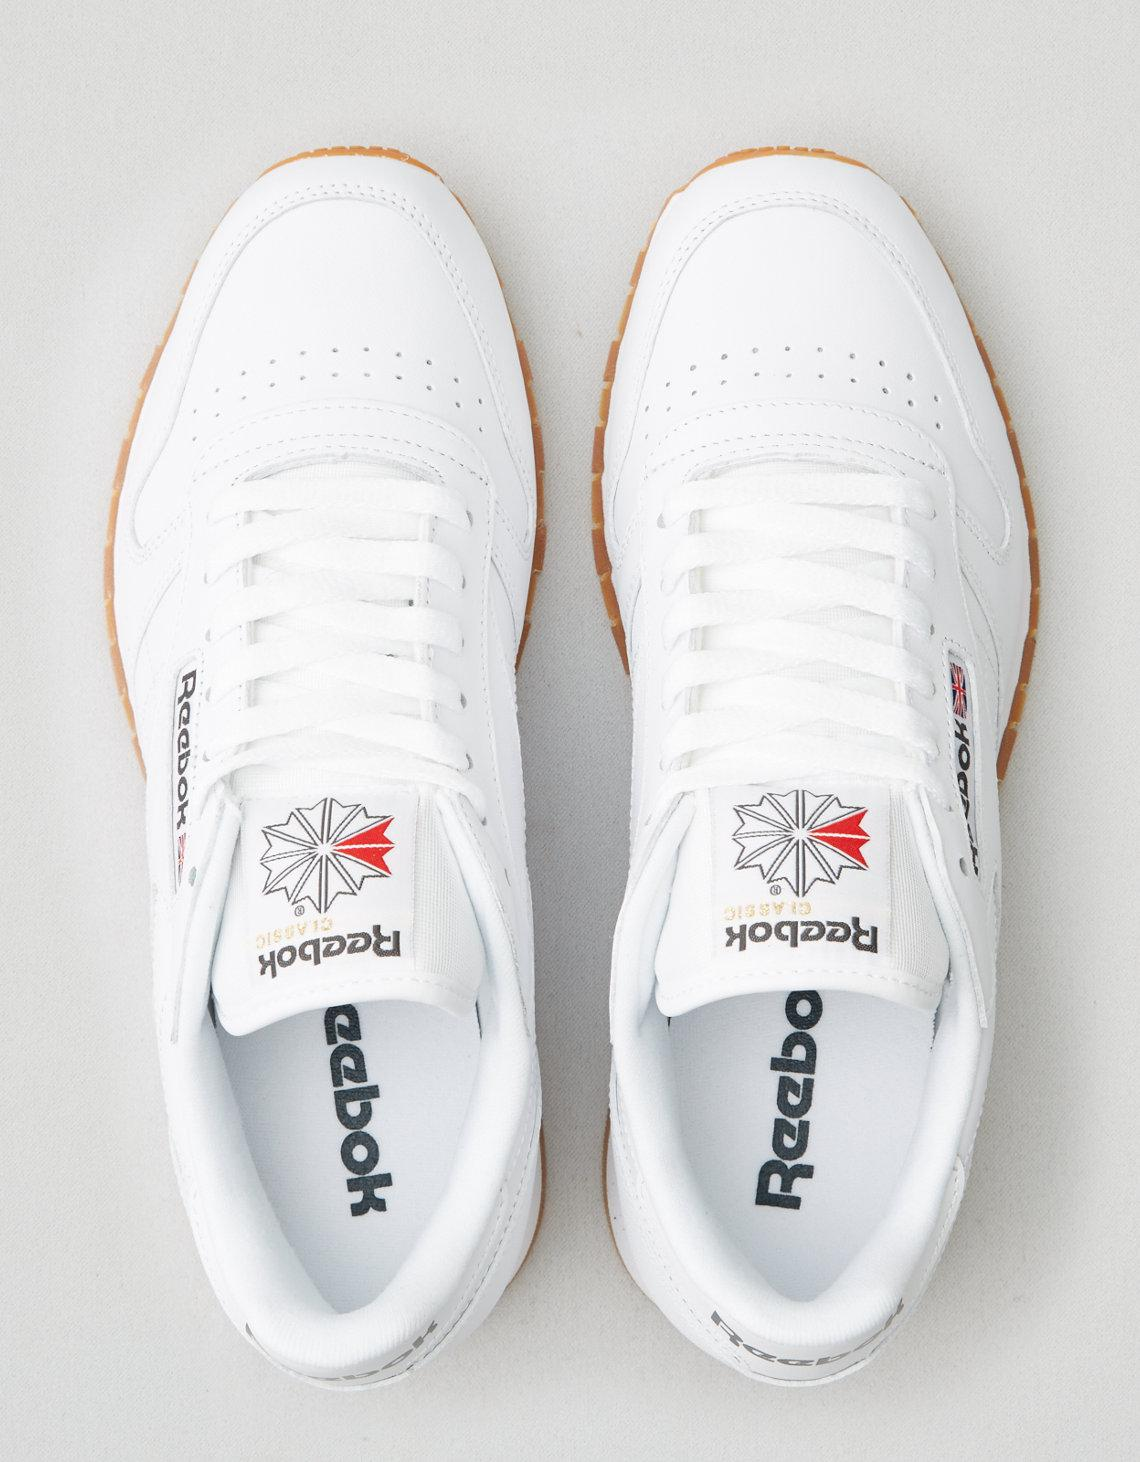 393fab0a175 Lyst - American Eagle Reebok Classic Leather Sneaker in White for Men